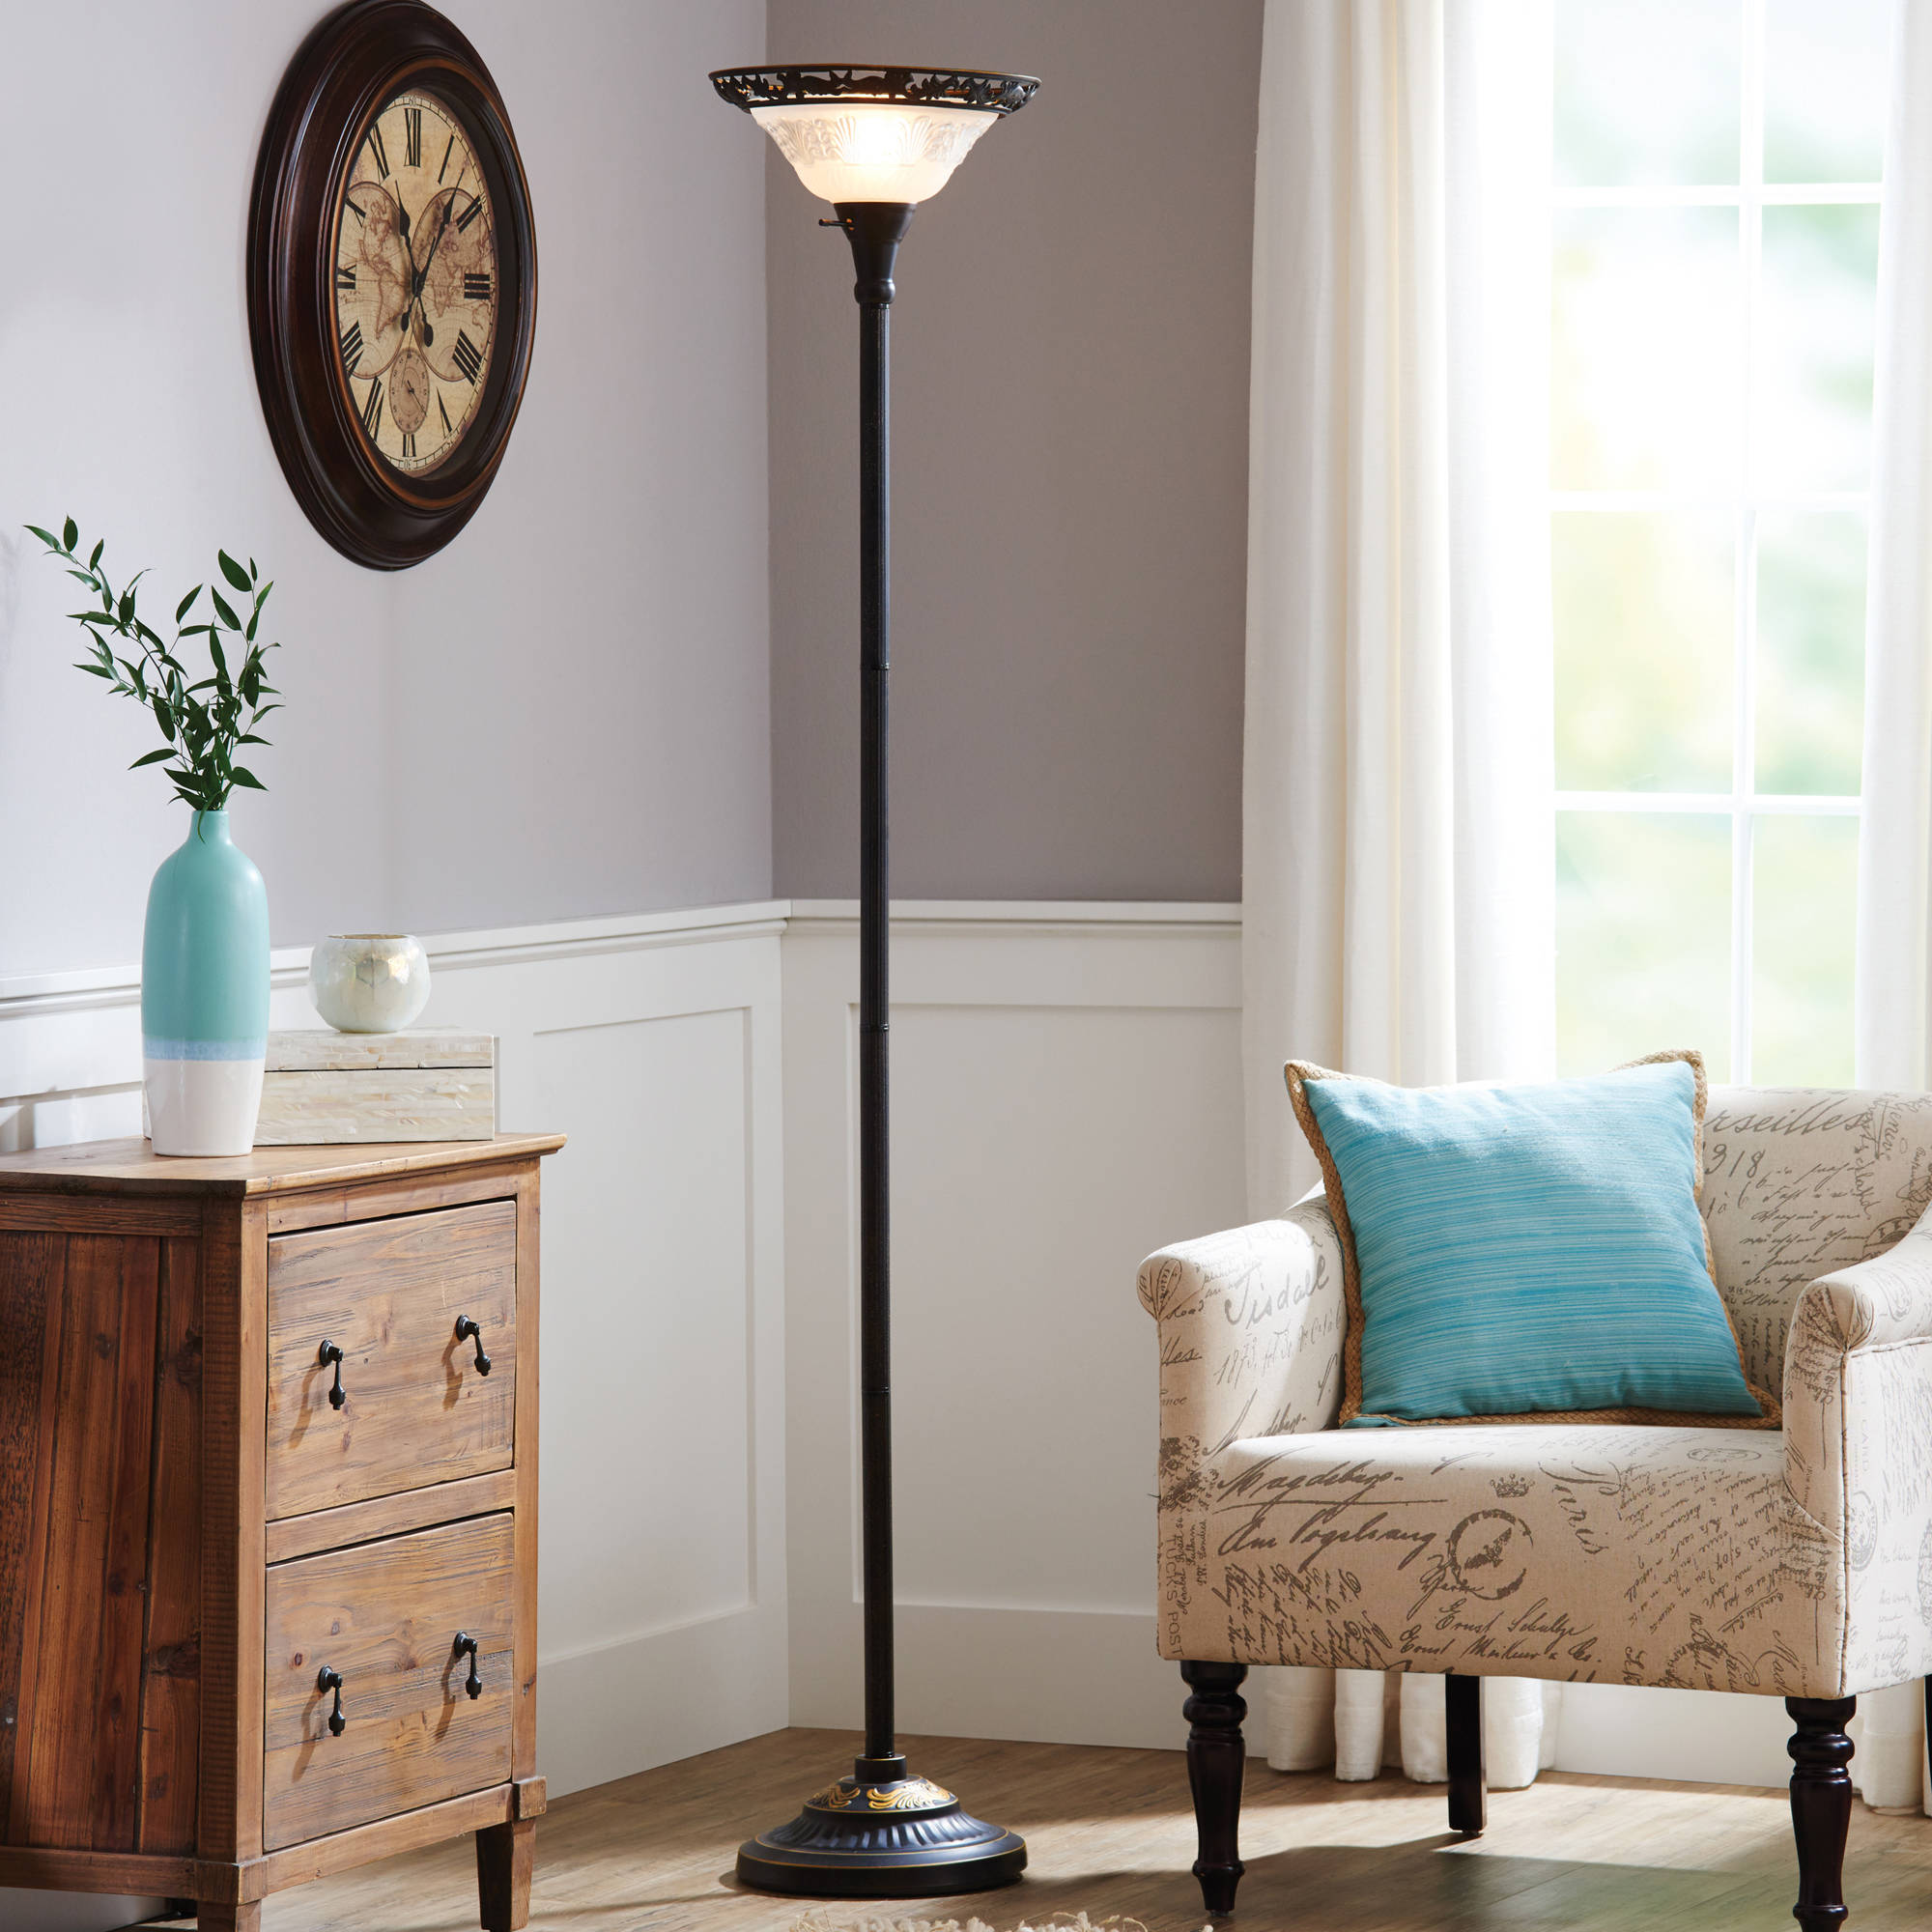 Better homes gardens victorian floor lamp with etched glass shade walmart com